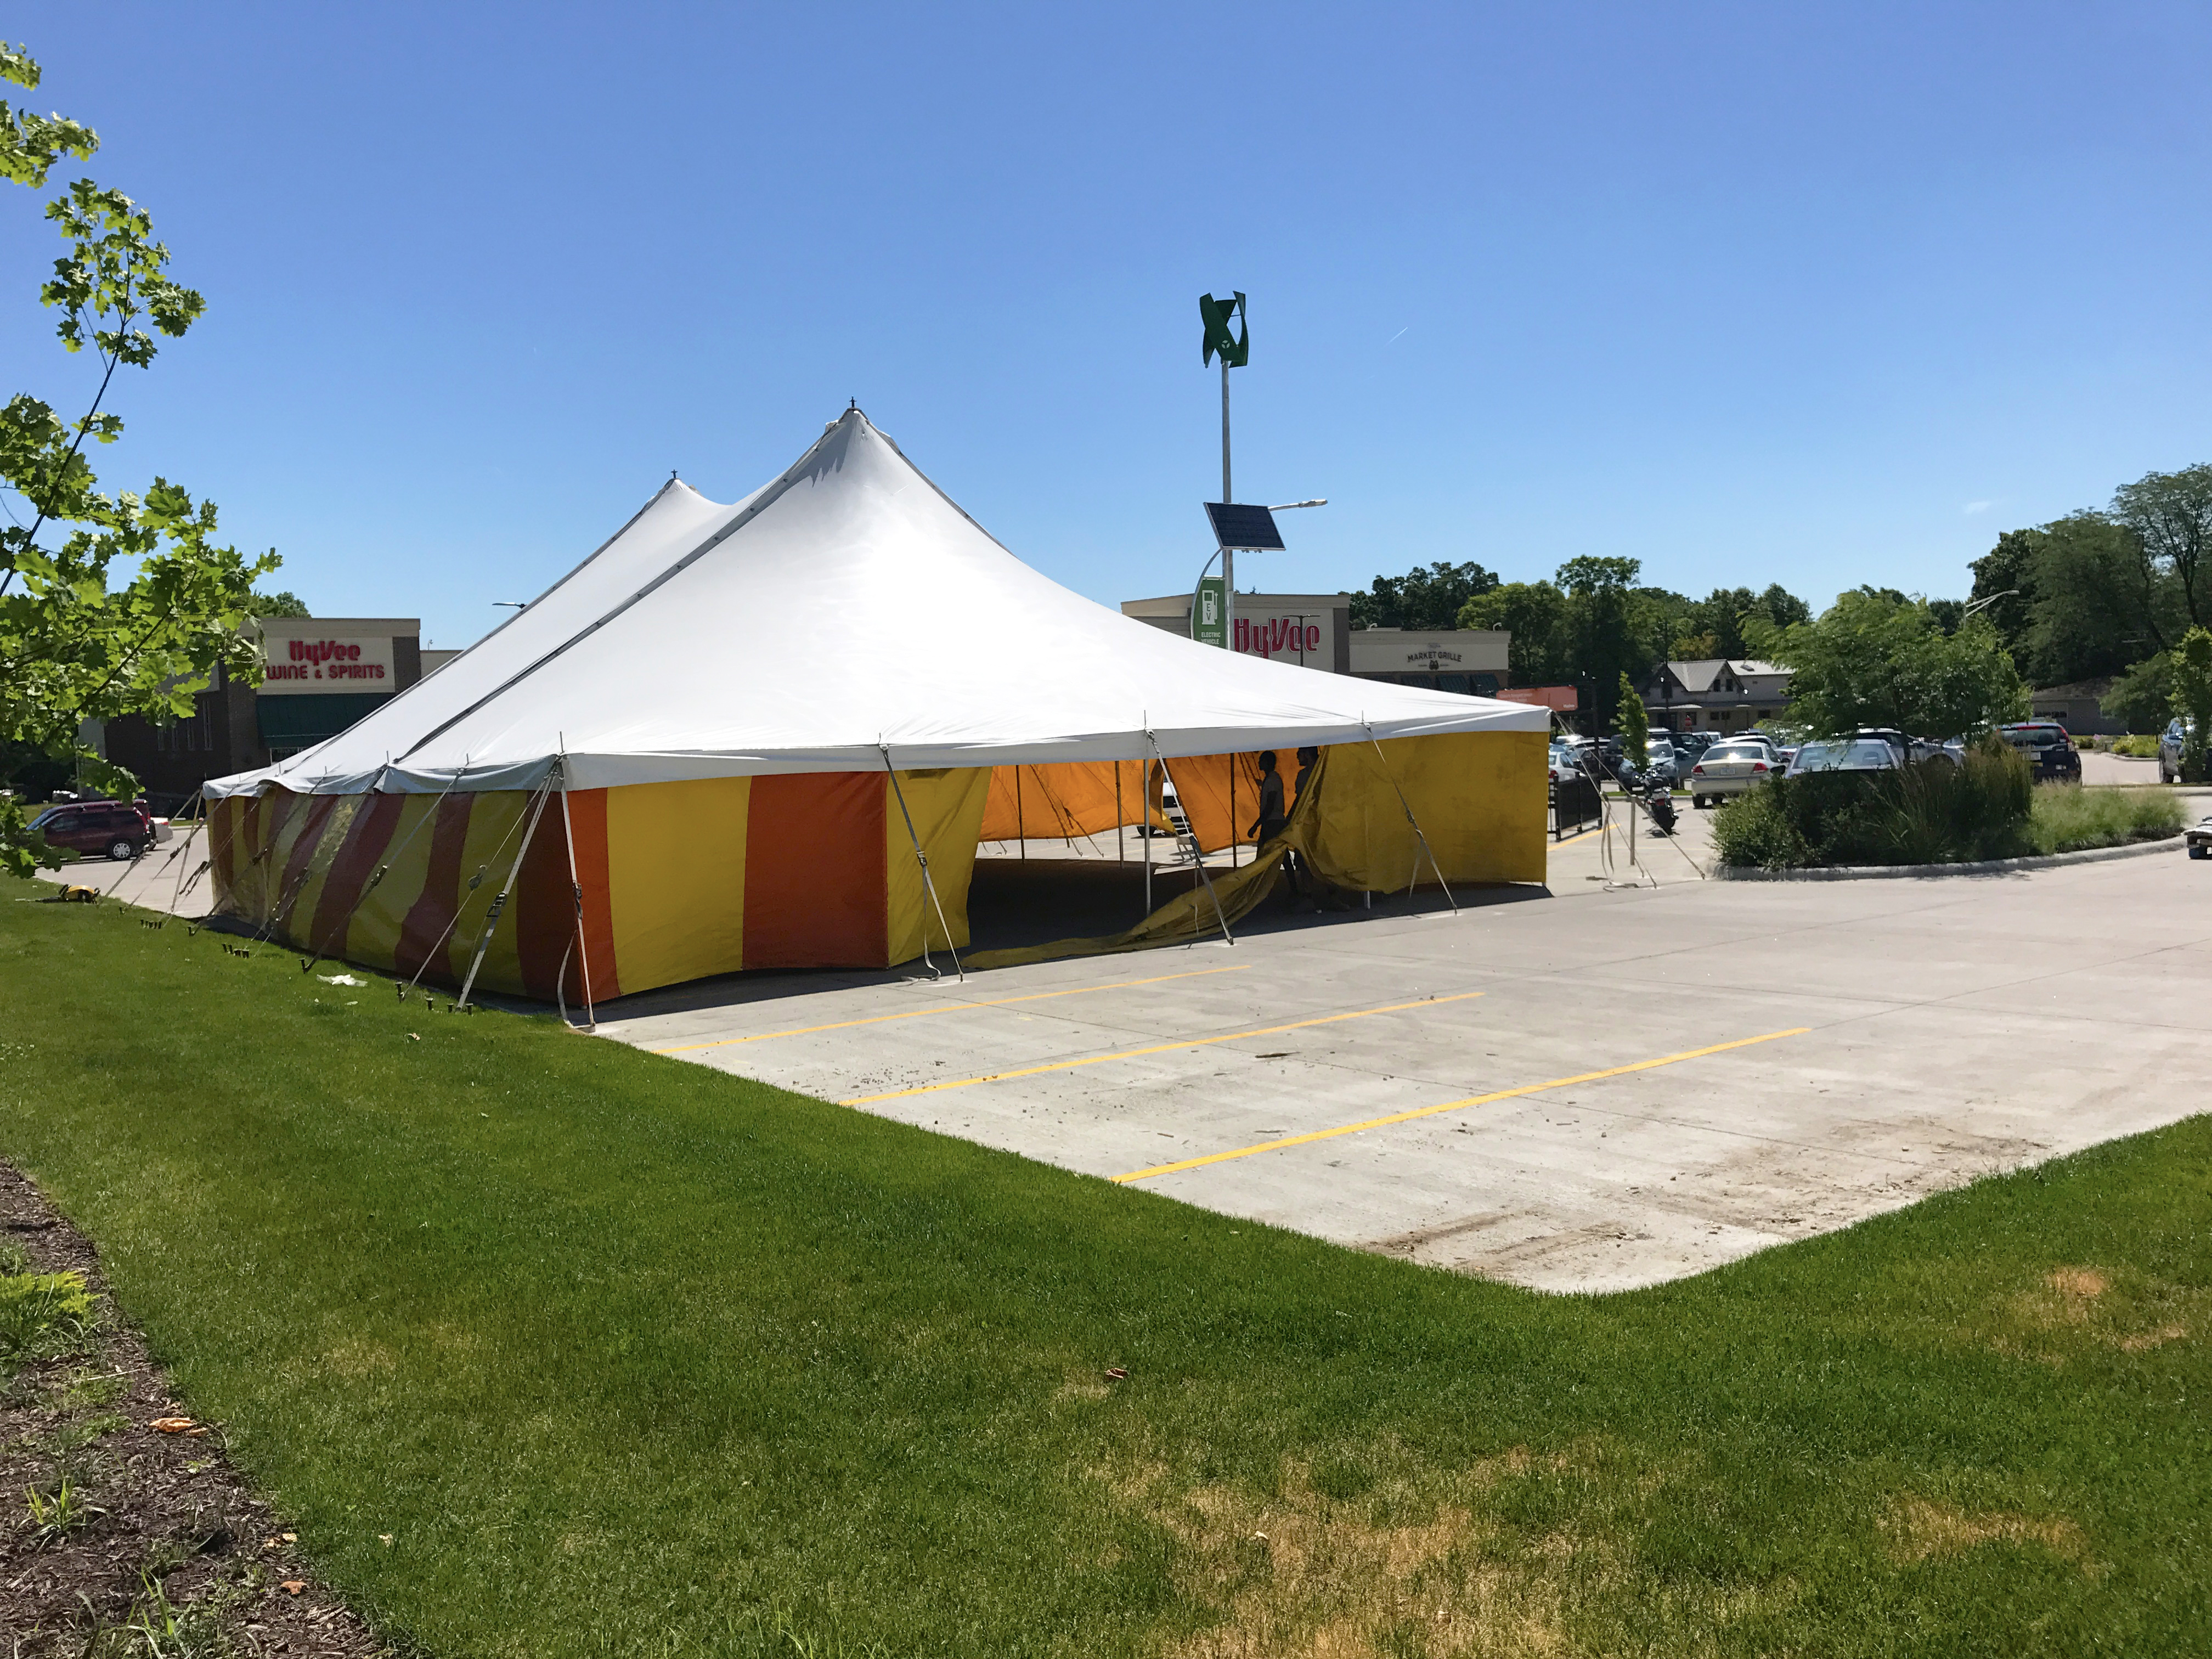 View of the parking lot at HyVee on Dodge St. in Iowa City with 40u2032 x 60u2032 rope and pole tent for Bellino Fireworks & View of the parking lot at HyVee on Dodge St. in Iowa City with 40 ...